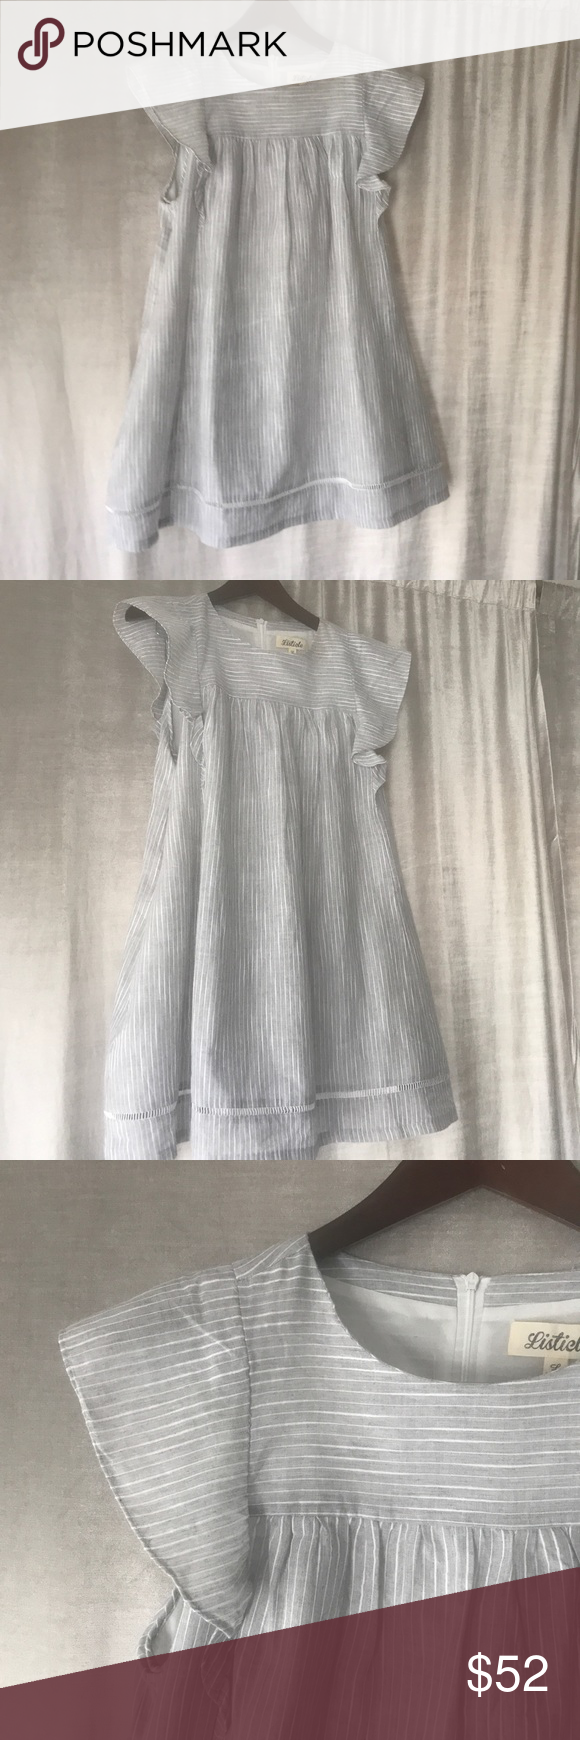 b70fc6adc77 Listicle Babydoll Tunic Dress - SG Solothurn